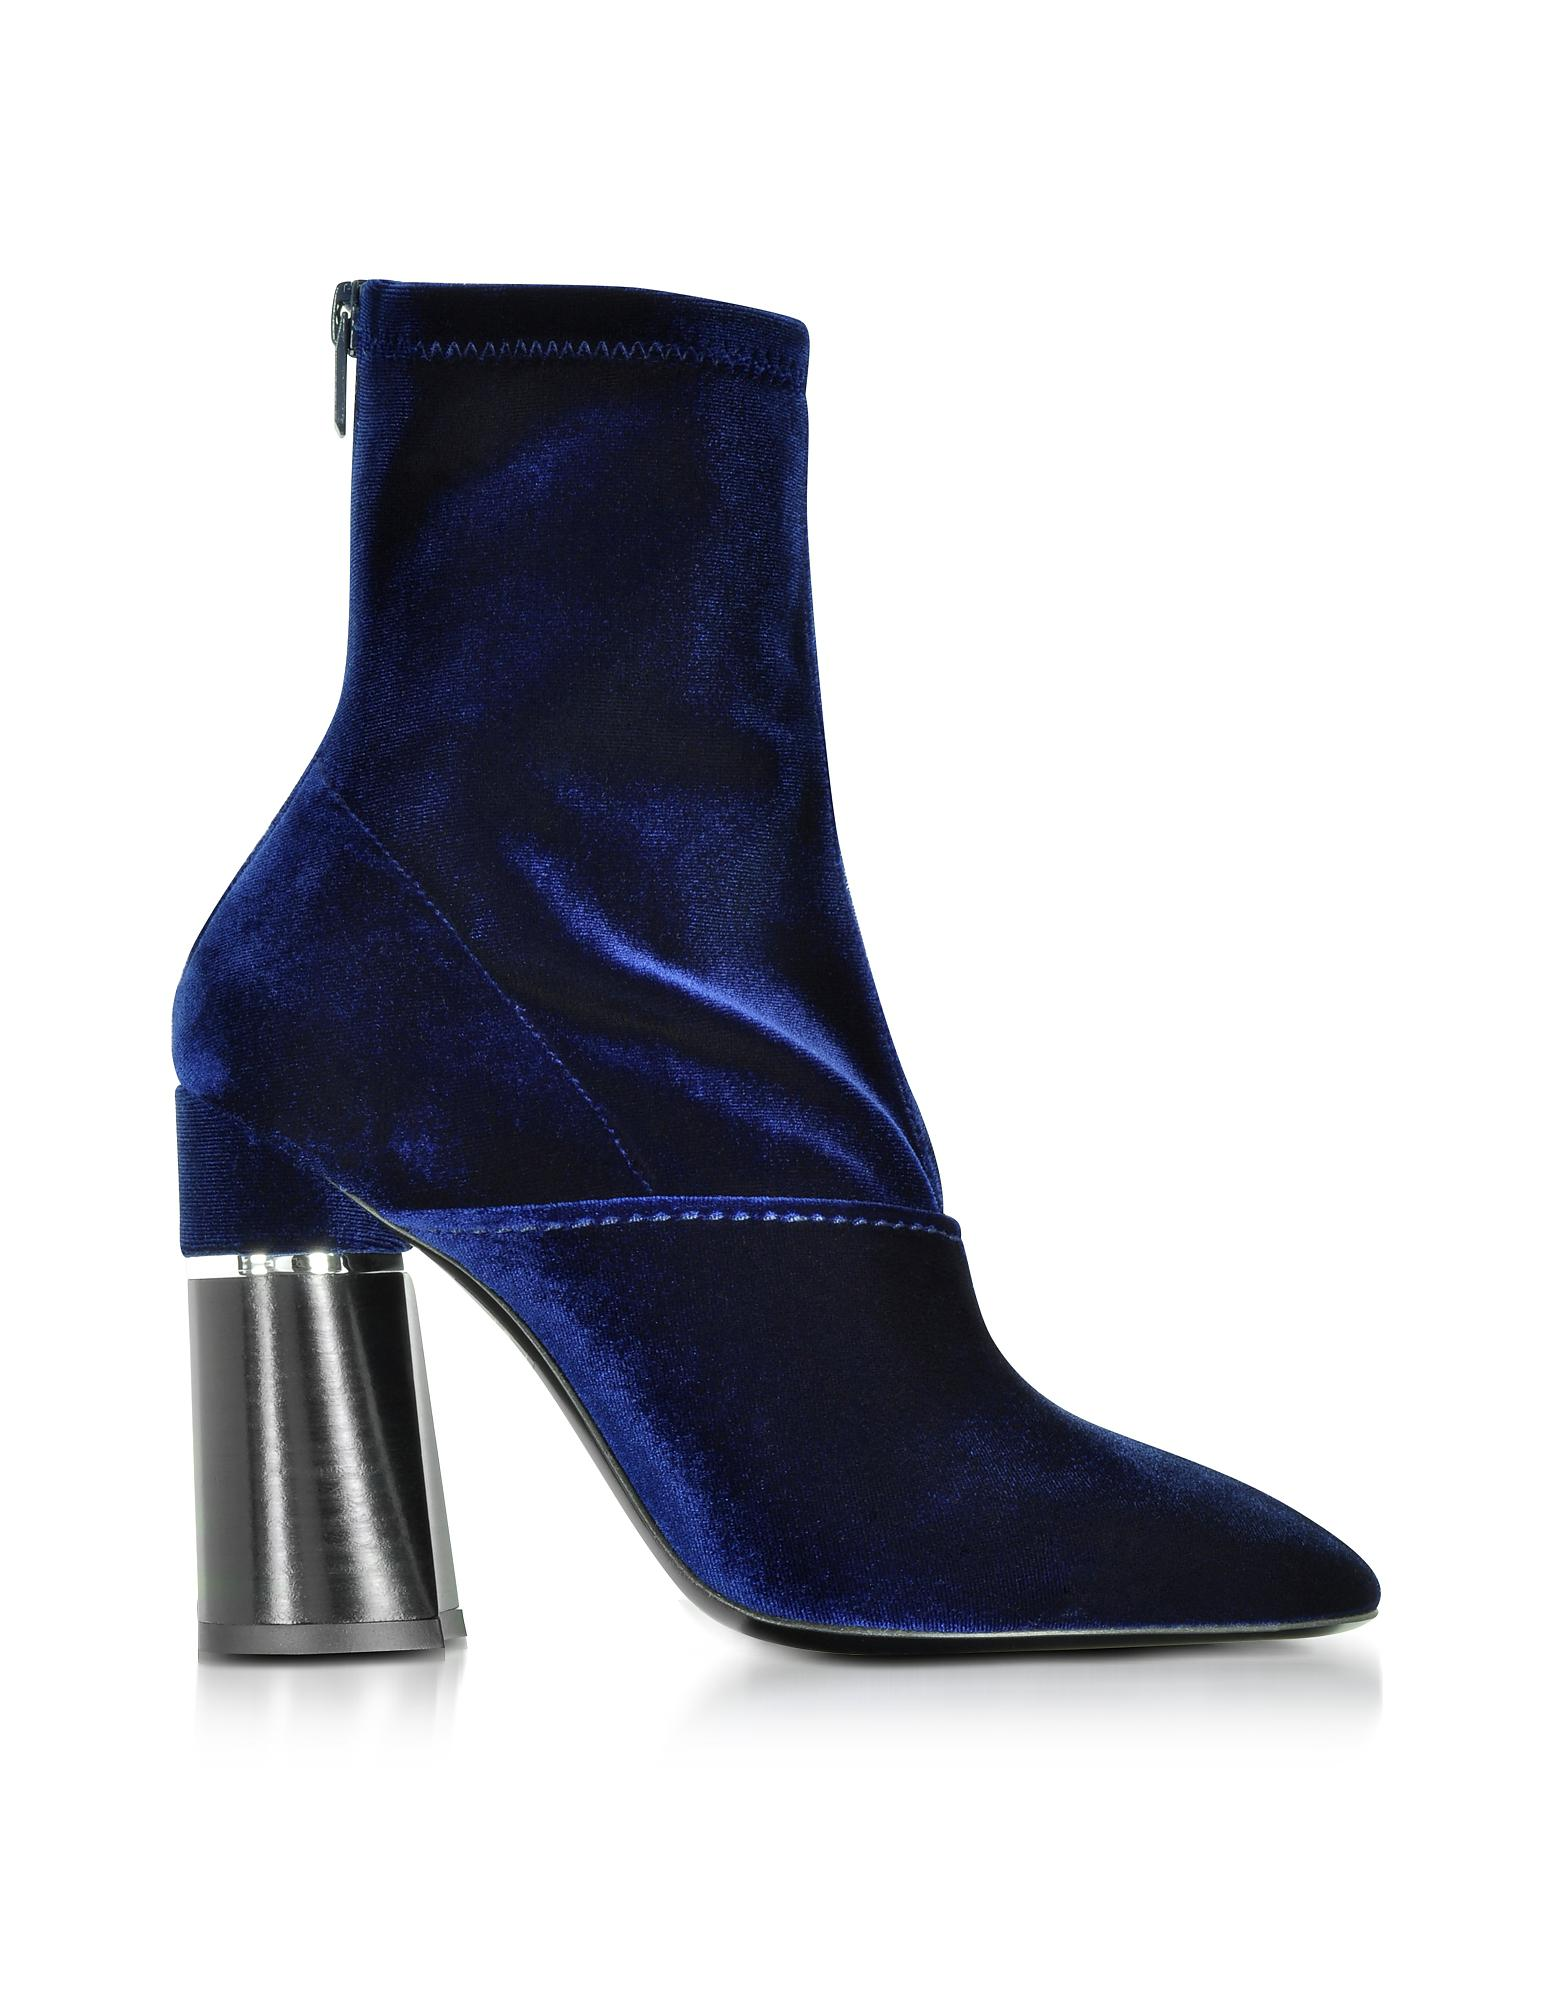 Royal blue ankle bootshas various designs one can choose any of it according to its outfit and occasion. You will get snow boots, stiletto, and sandals in this category. You will get snow boots, stiletto, and sandals in this category.